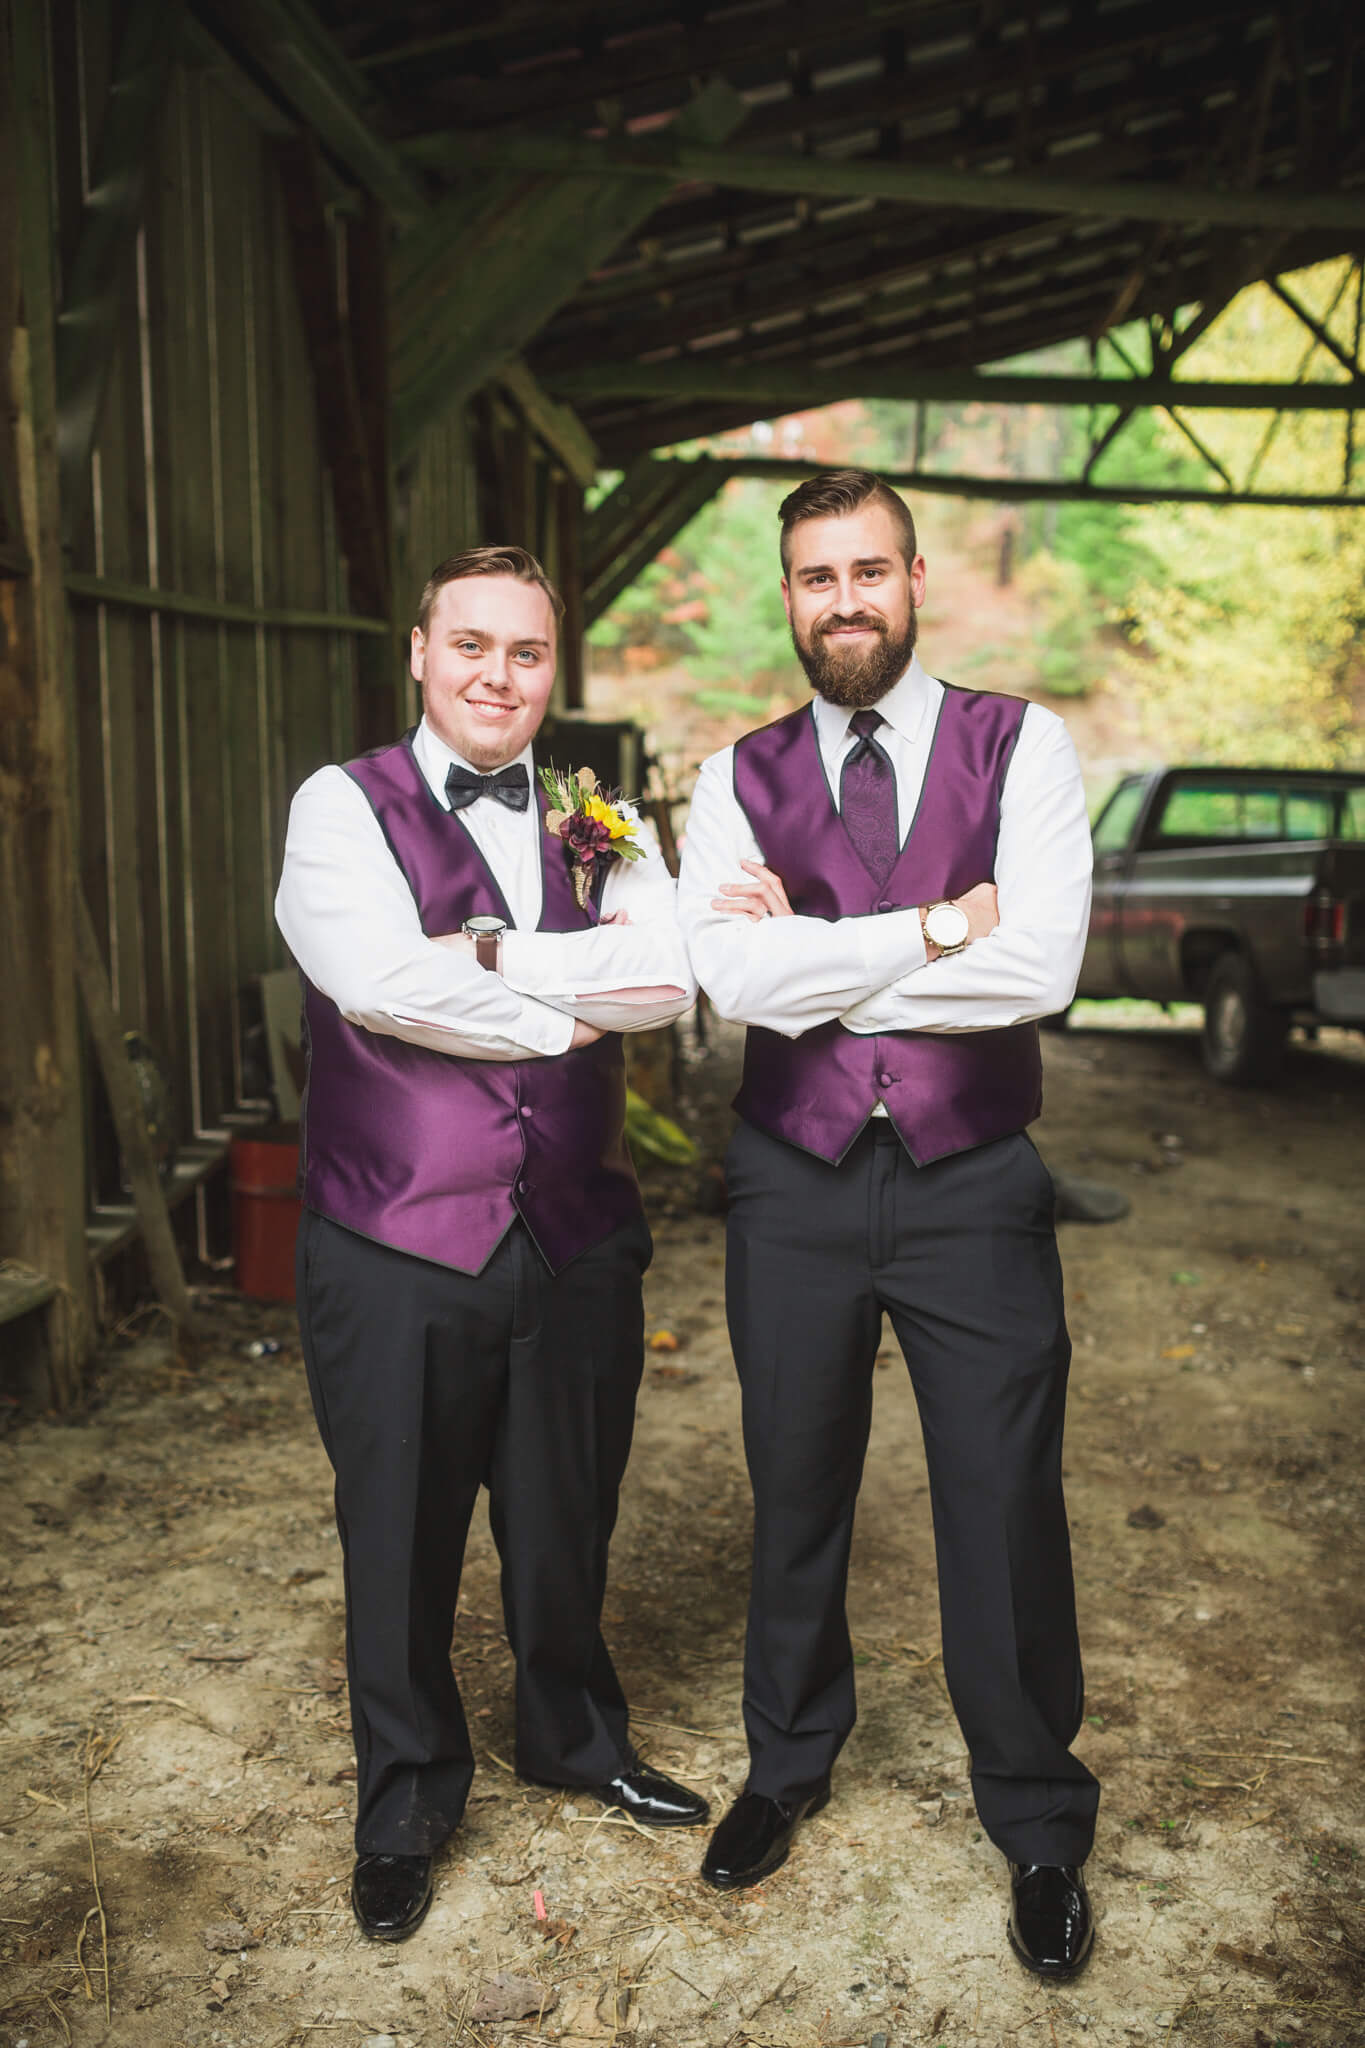 Mitcham's Barn Wedding-102.JPG